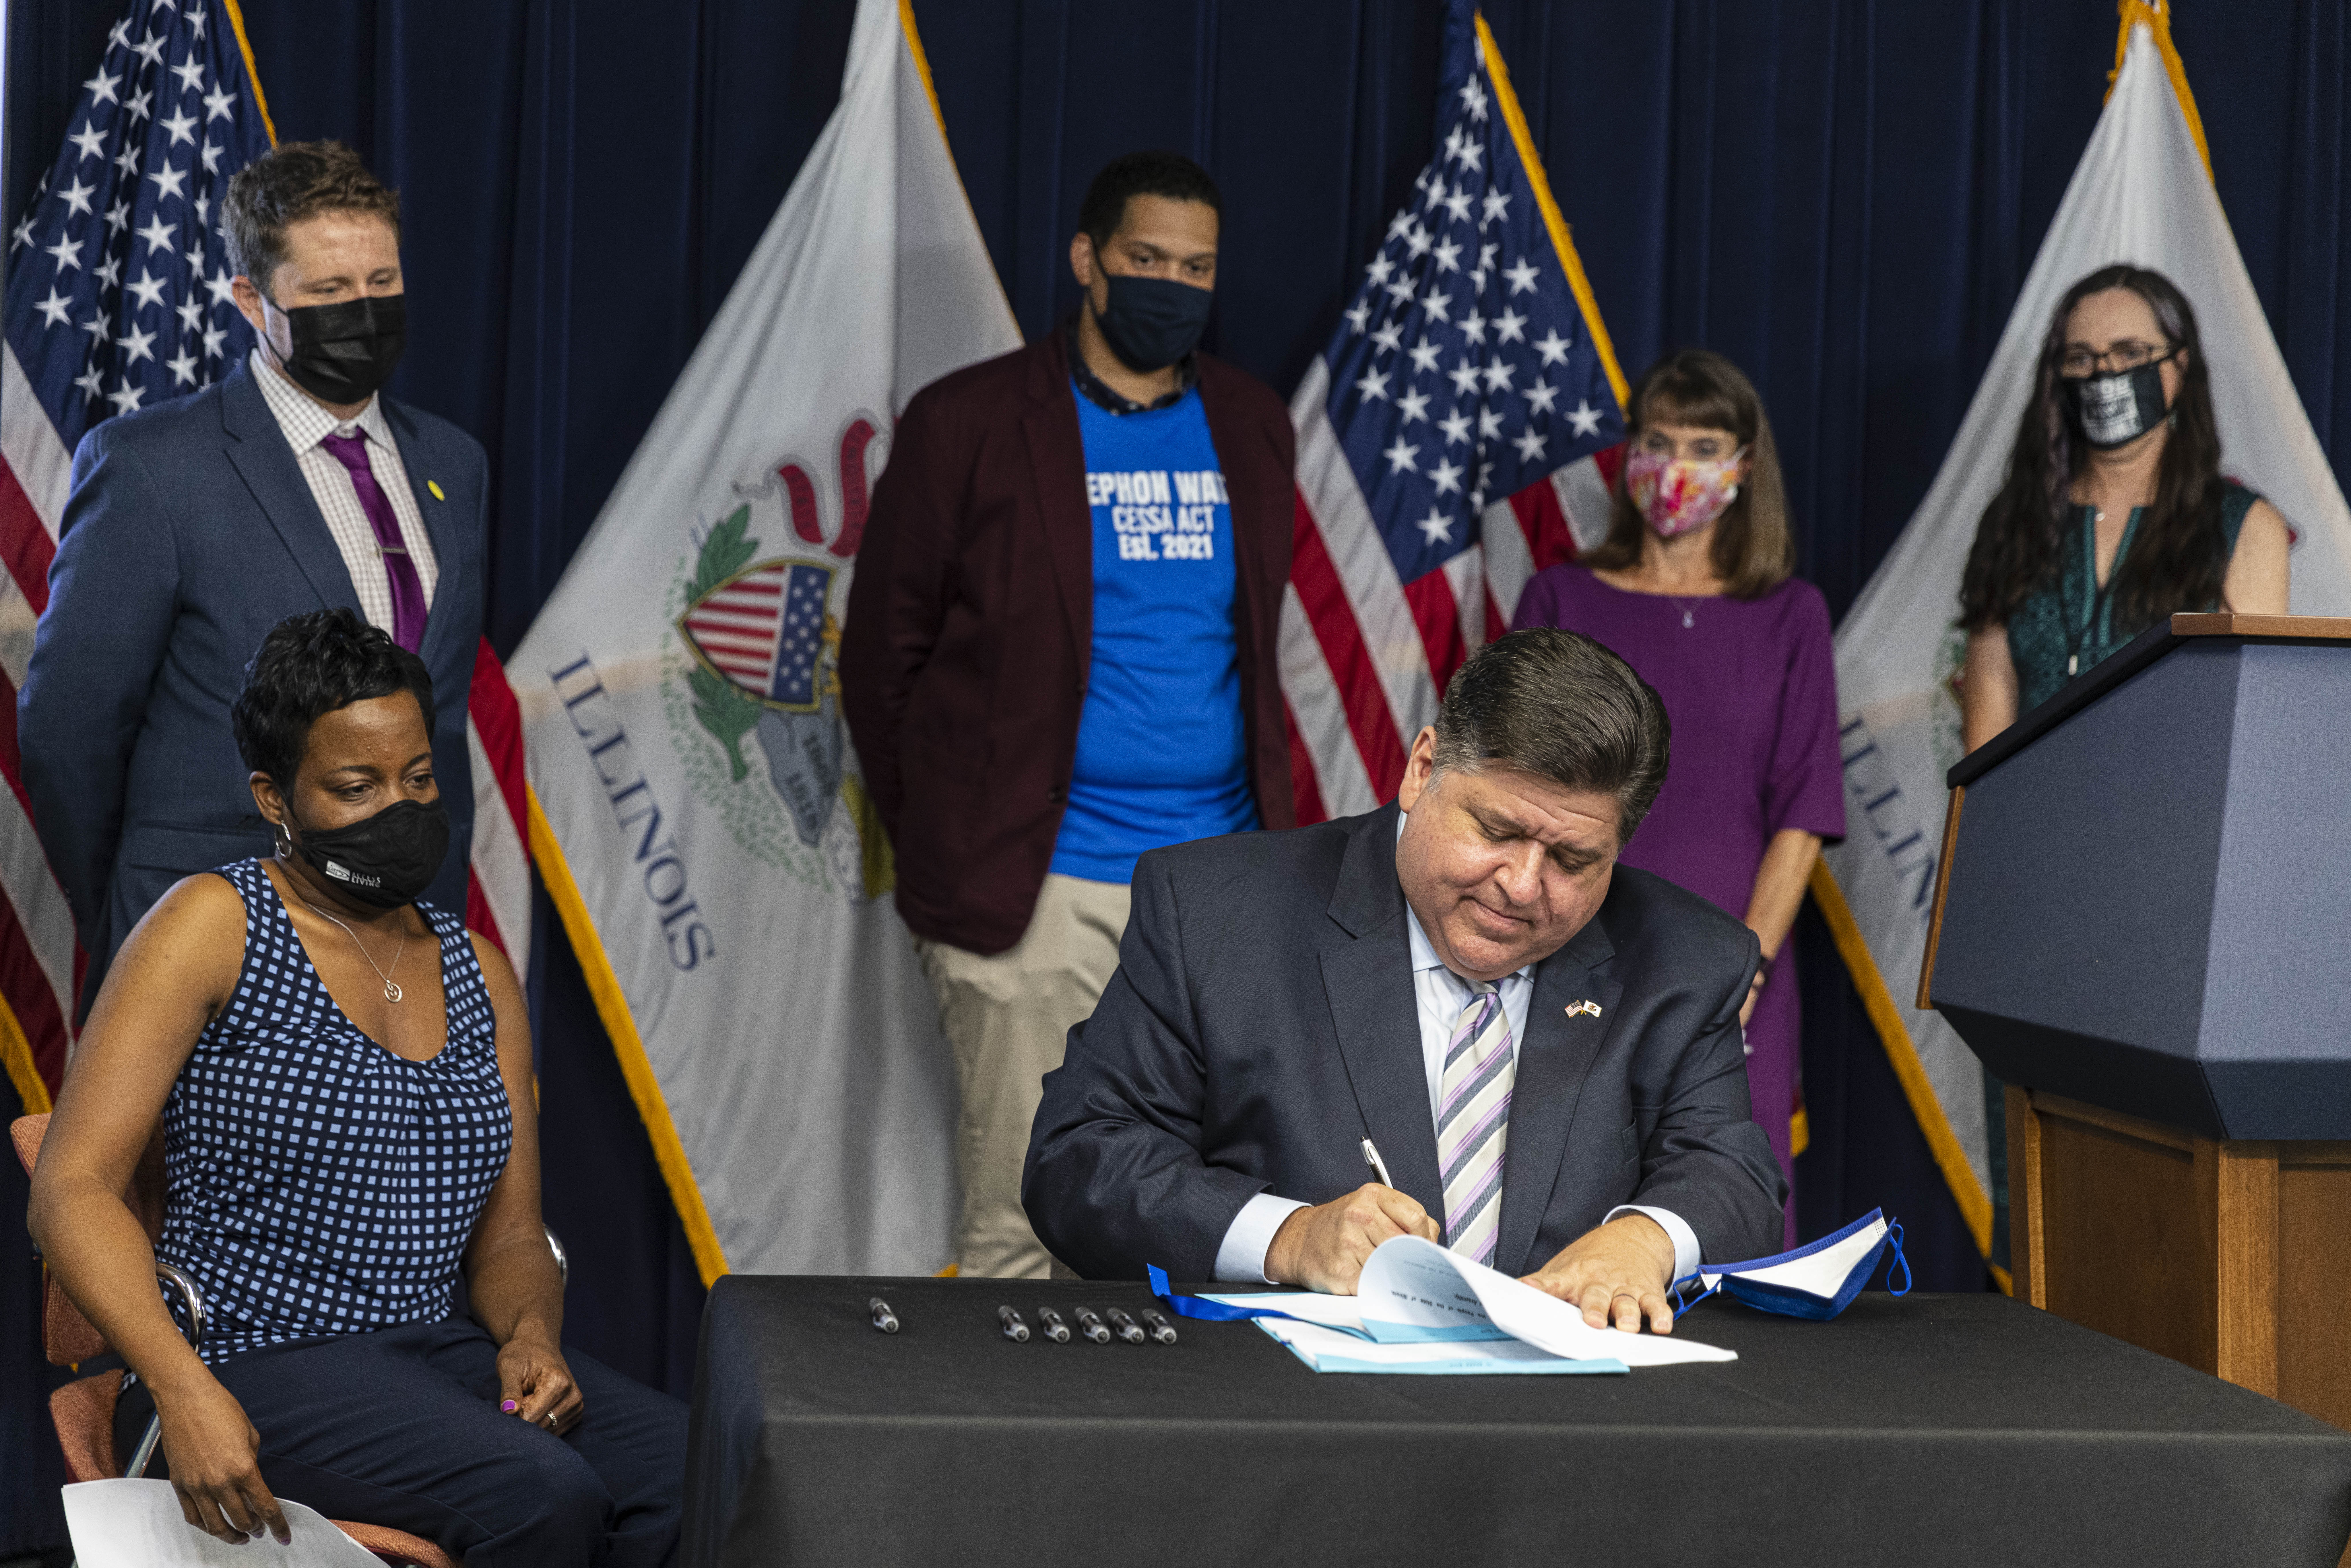 Gov. J.B. Pritzker signs bills to expand access to mental health care in Illinois at the Thompson Center on Wednesday.